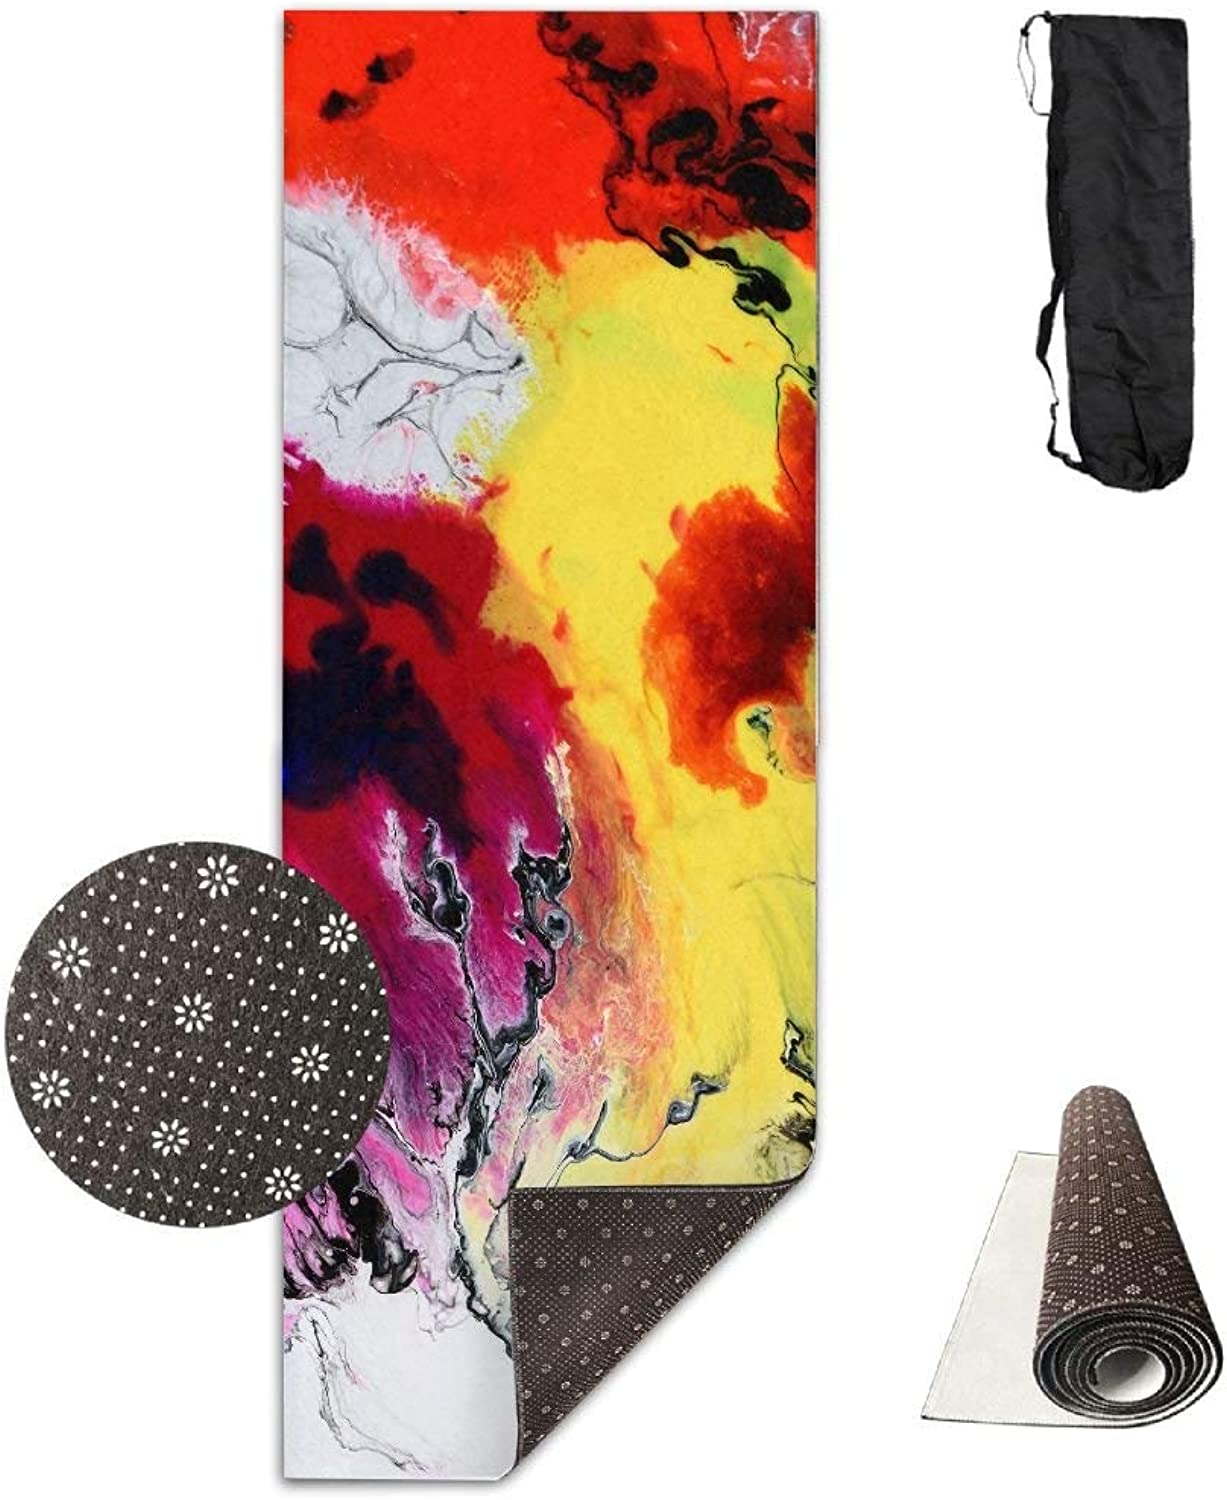 Abstract Watercolor Art Yoga Mat  Advanced Yoga Mat  NonSlip Lining  Easy to Clean  LatexFree  Lightweight and Durable  Long 180 Width 61cm